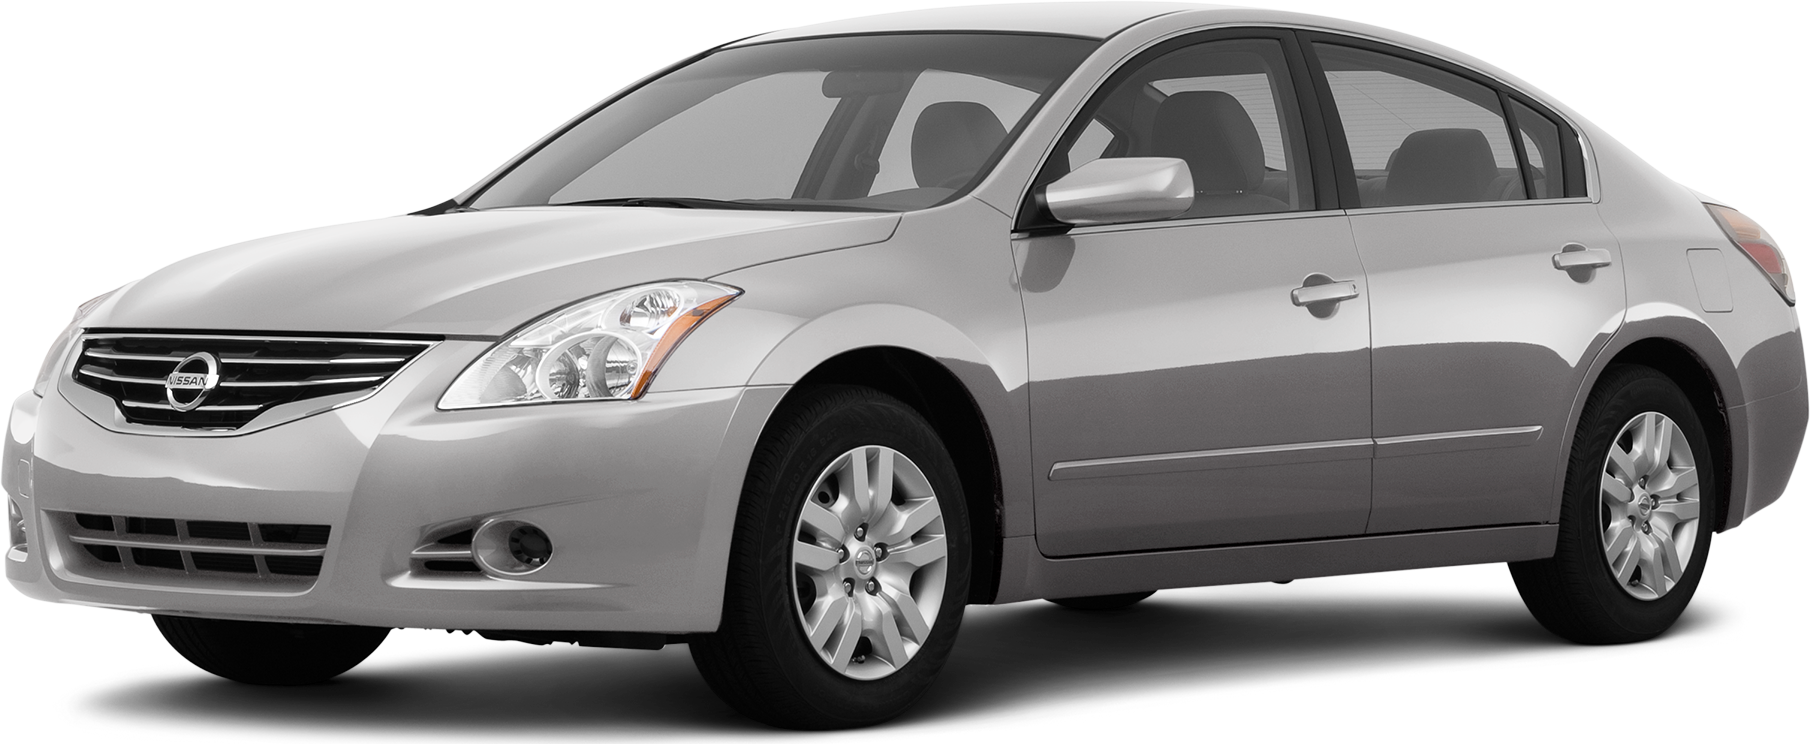 2012 Nissan Altima Values Cars For Sale Kelley Blue Book